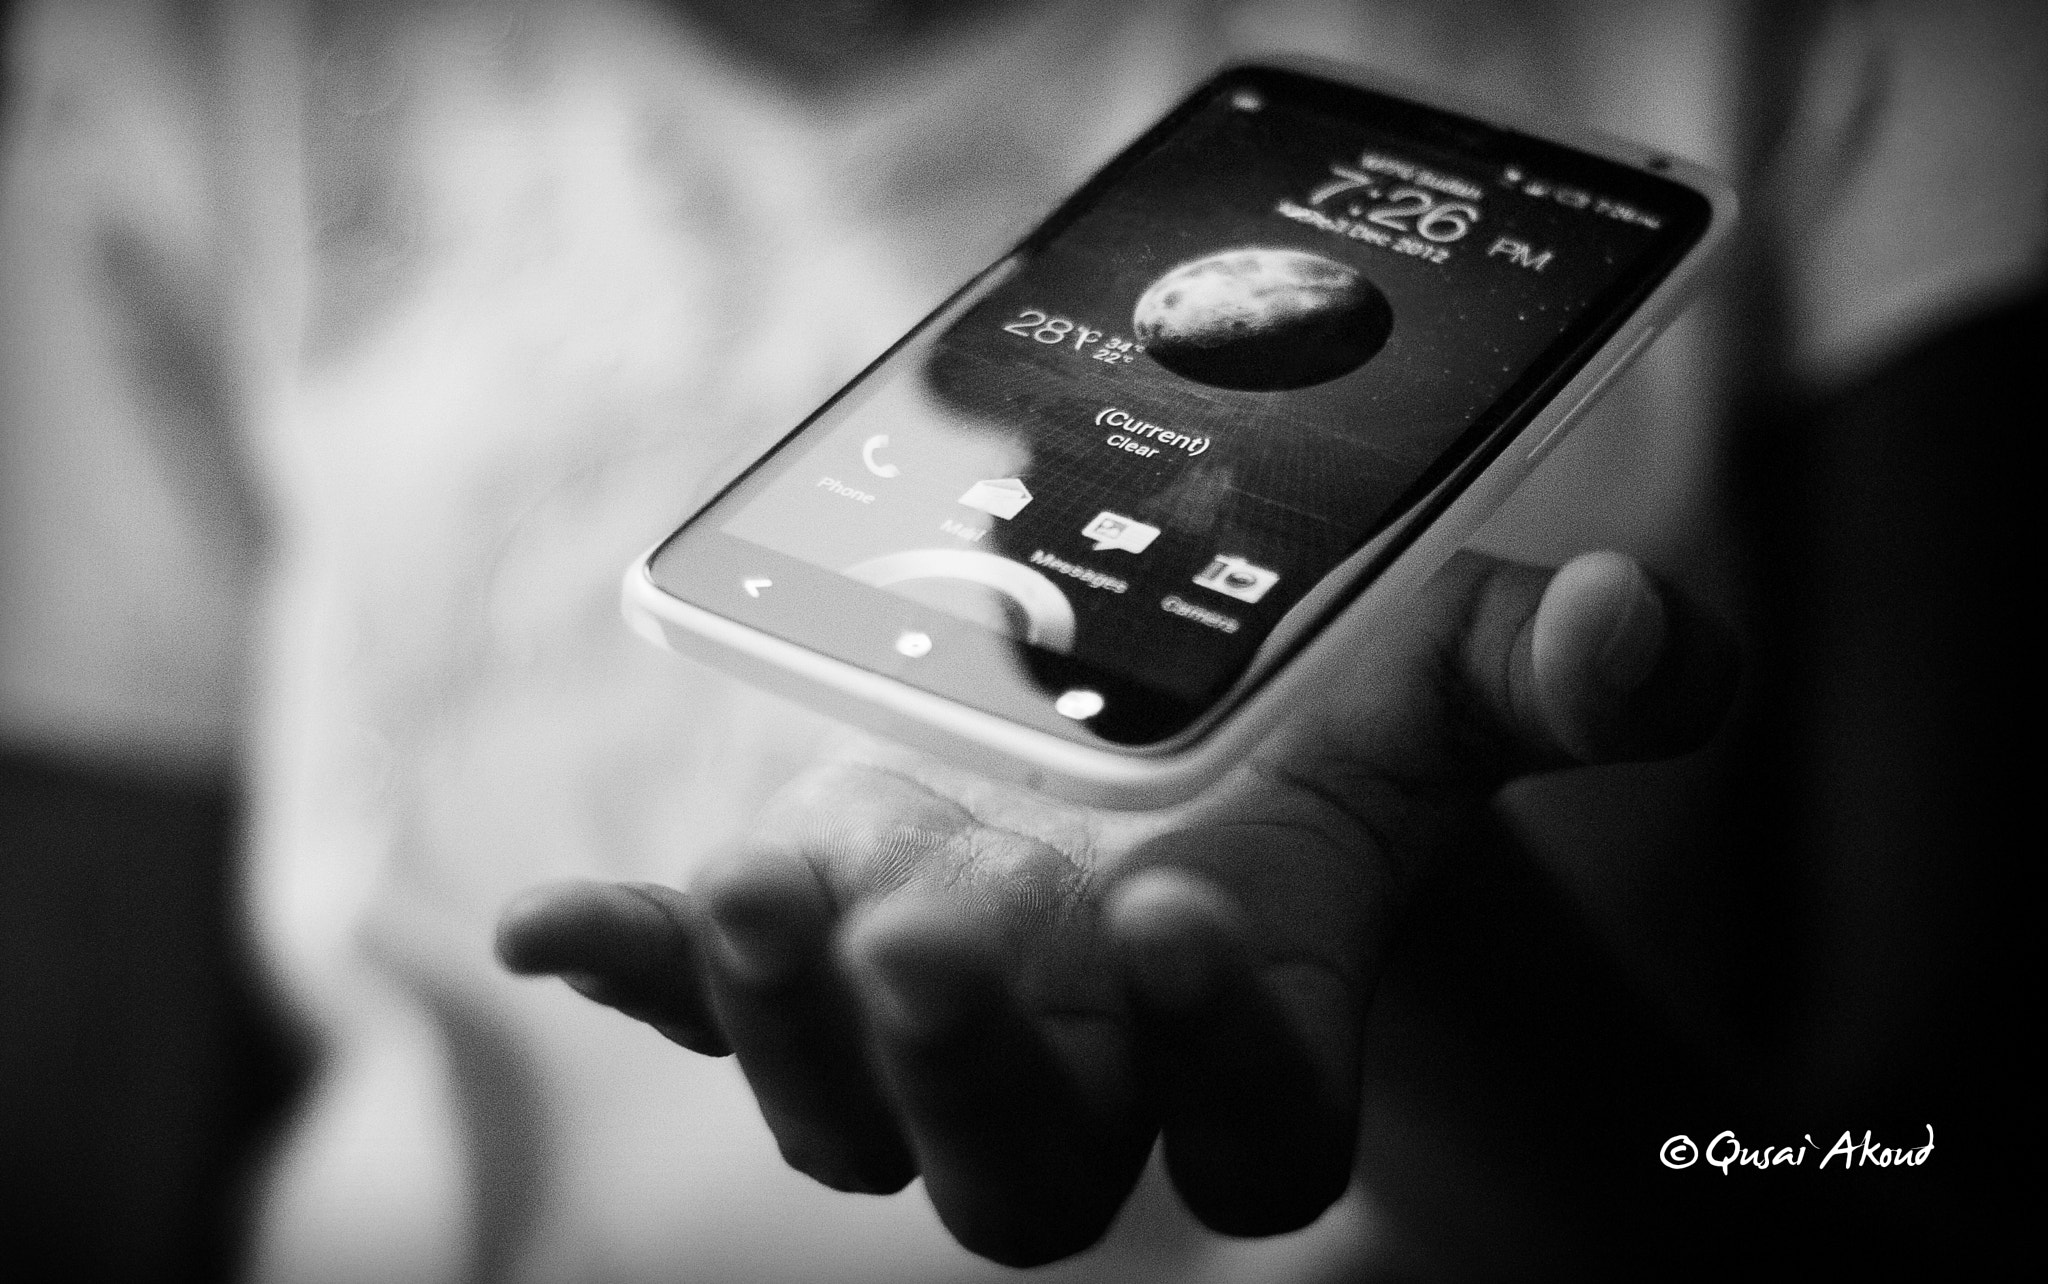 Photograph Something i Held by Qusai Akoud on 500px